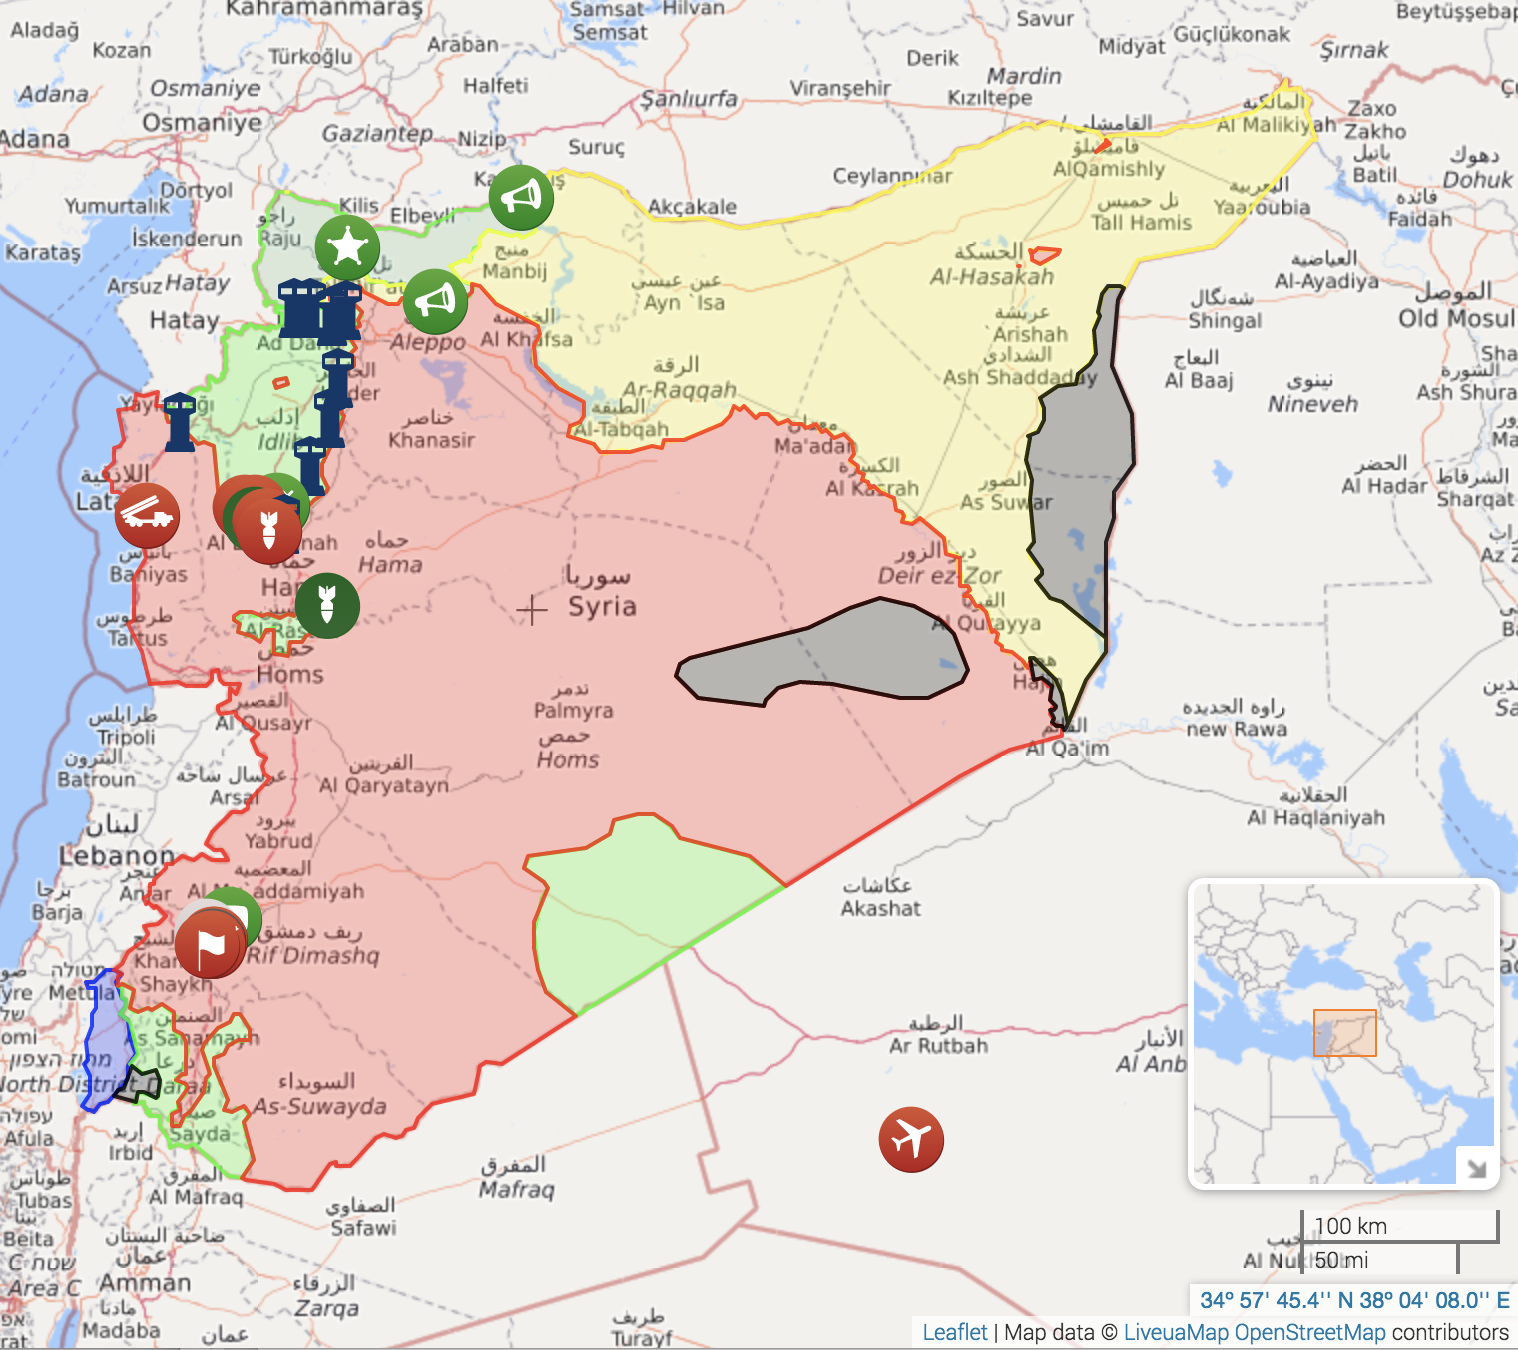 The live map of Syria that Sean mentions in this episode can be found at  https://syria.liveuamap.com/ . This image is a copy of the map as of April 26, 2018 at 10:20pm EST.